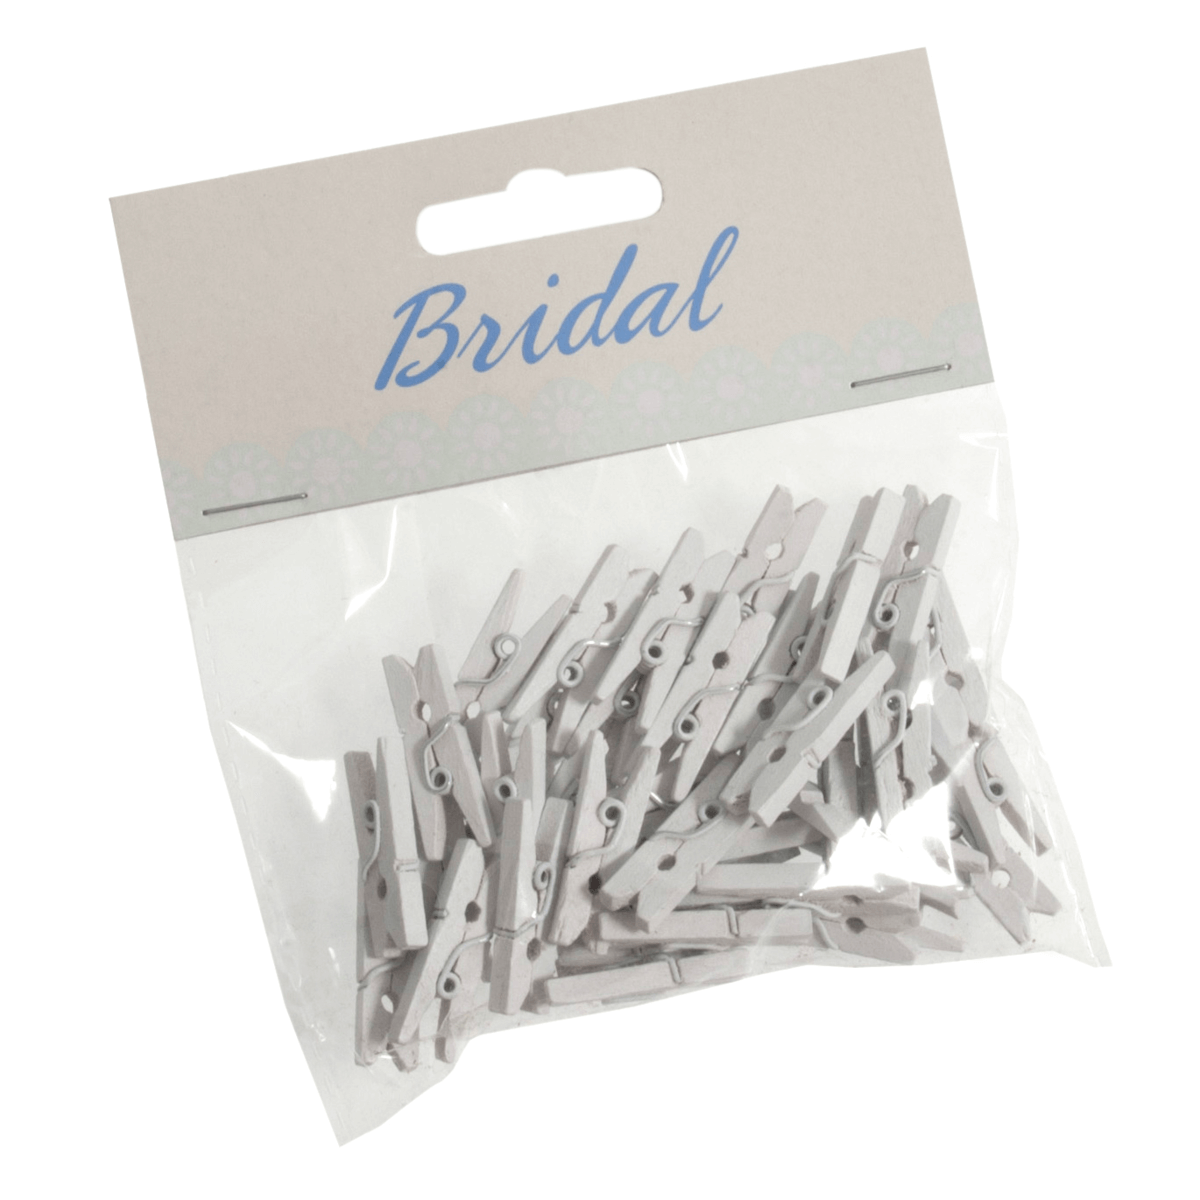 X 45 Bridal White Wood Craft Pegs Embellishments Wedding Venue Decoration